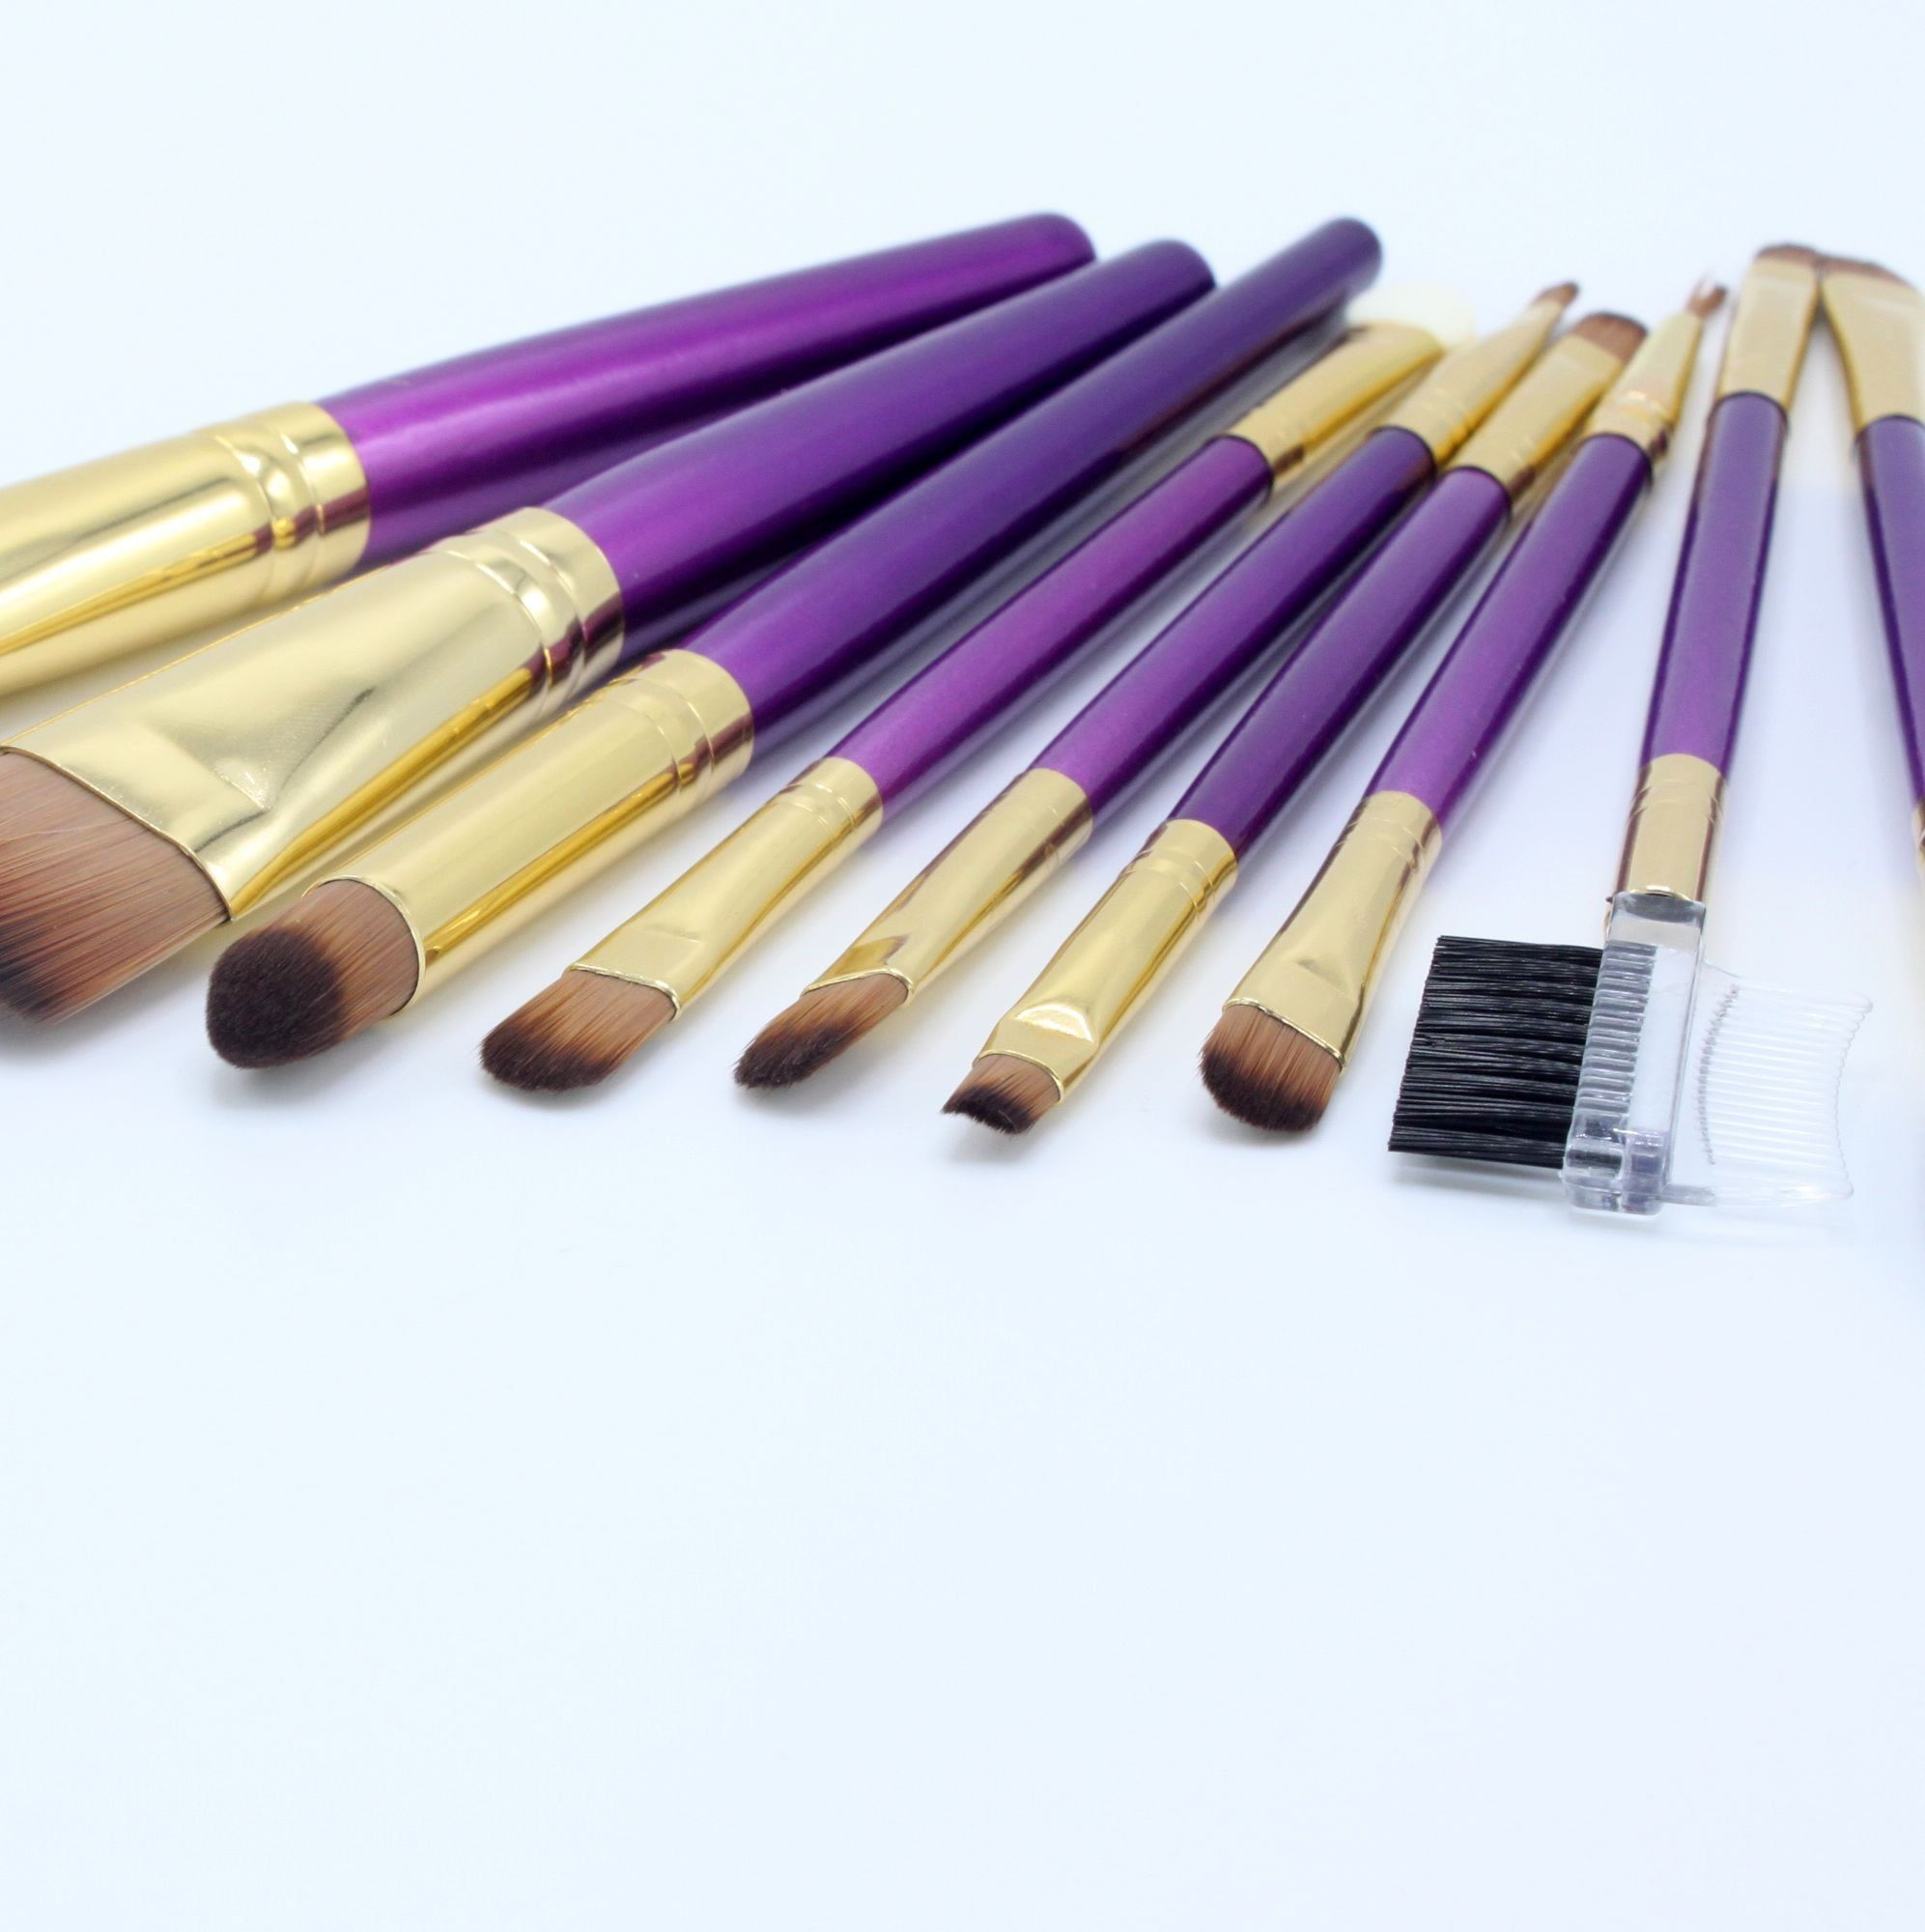 Makeup Brushes 9 Pieces Cosmetics Professional Make Up